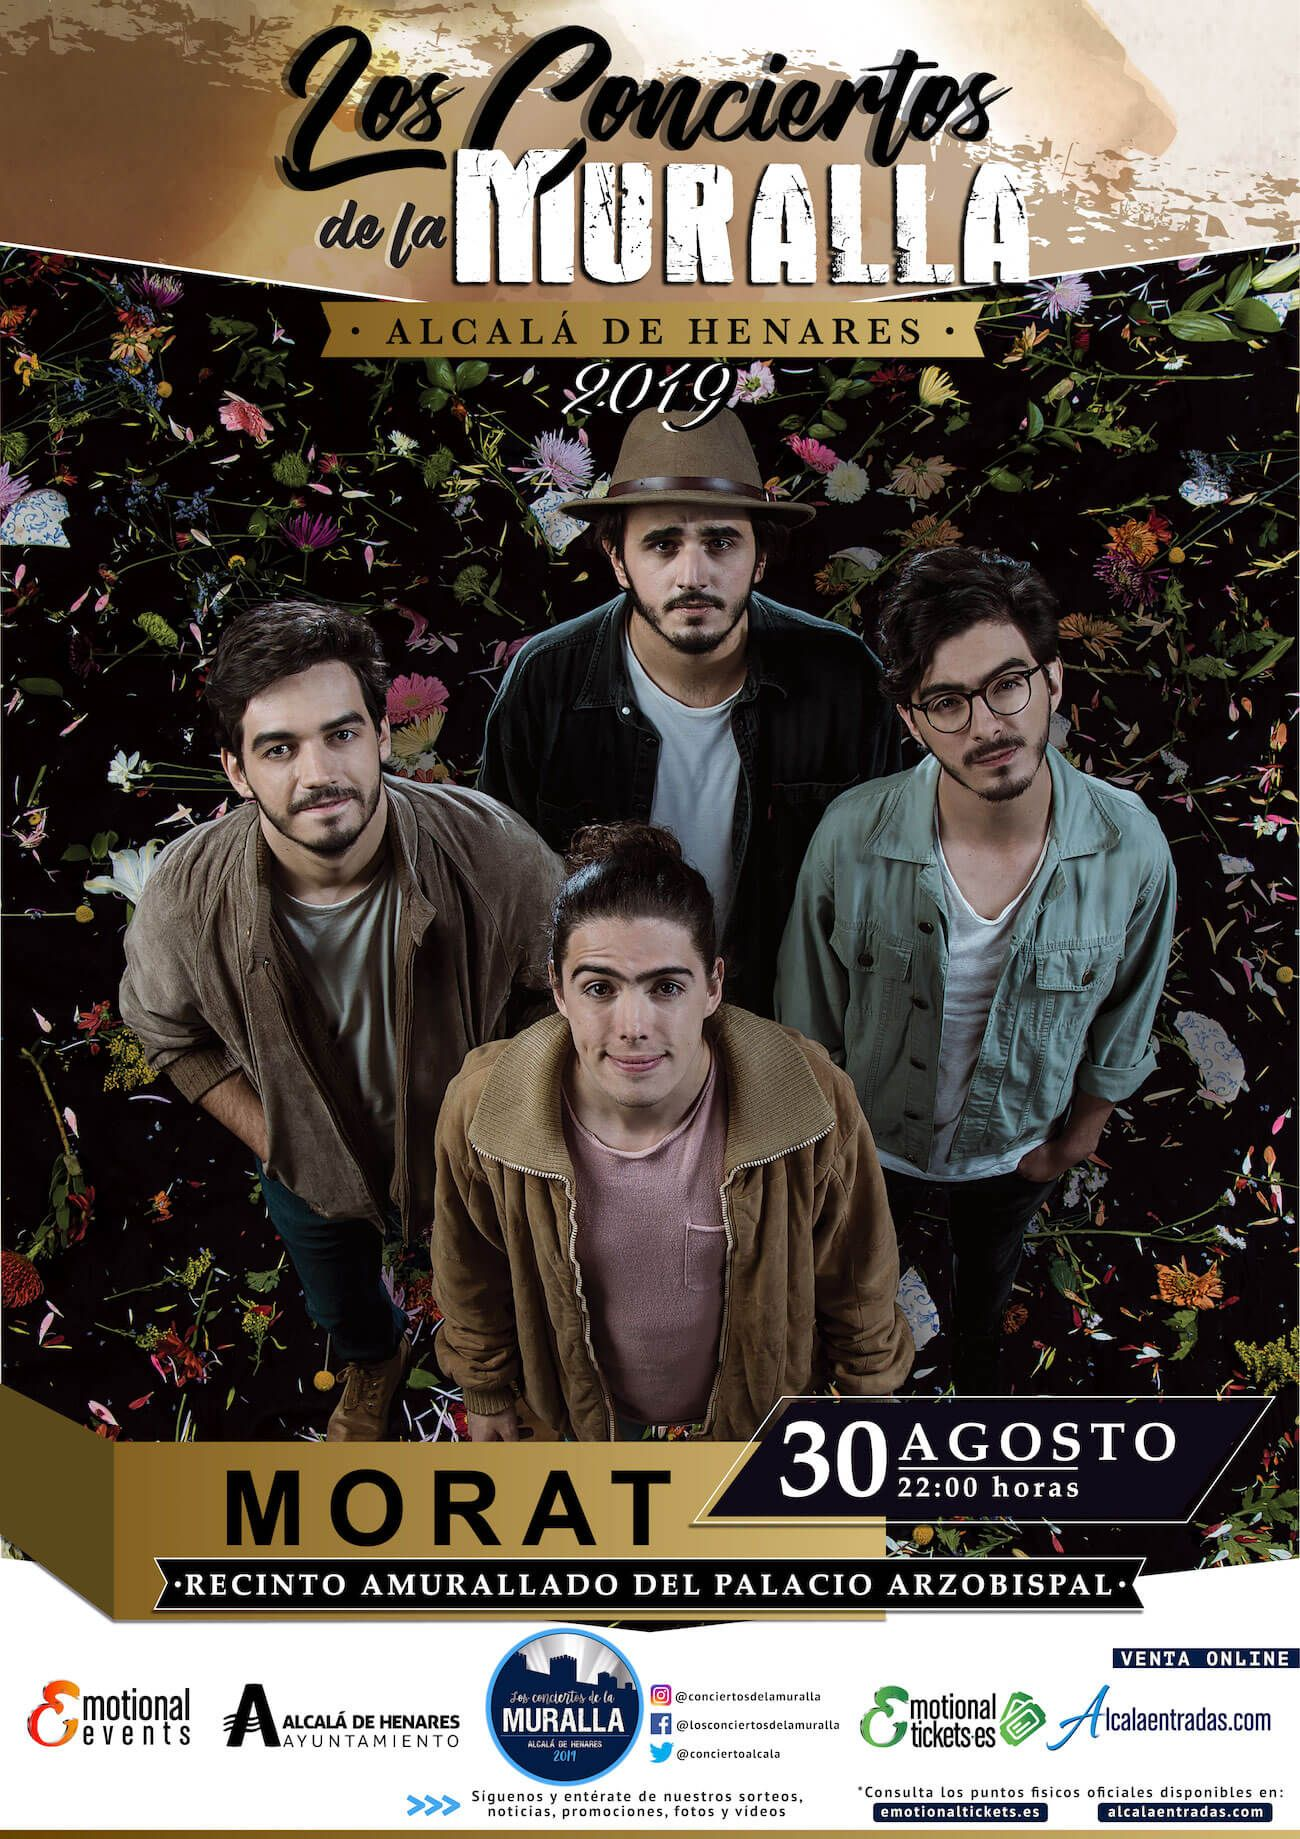 Morat Los Conciertos De La Muralla Emotional Events